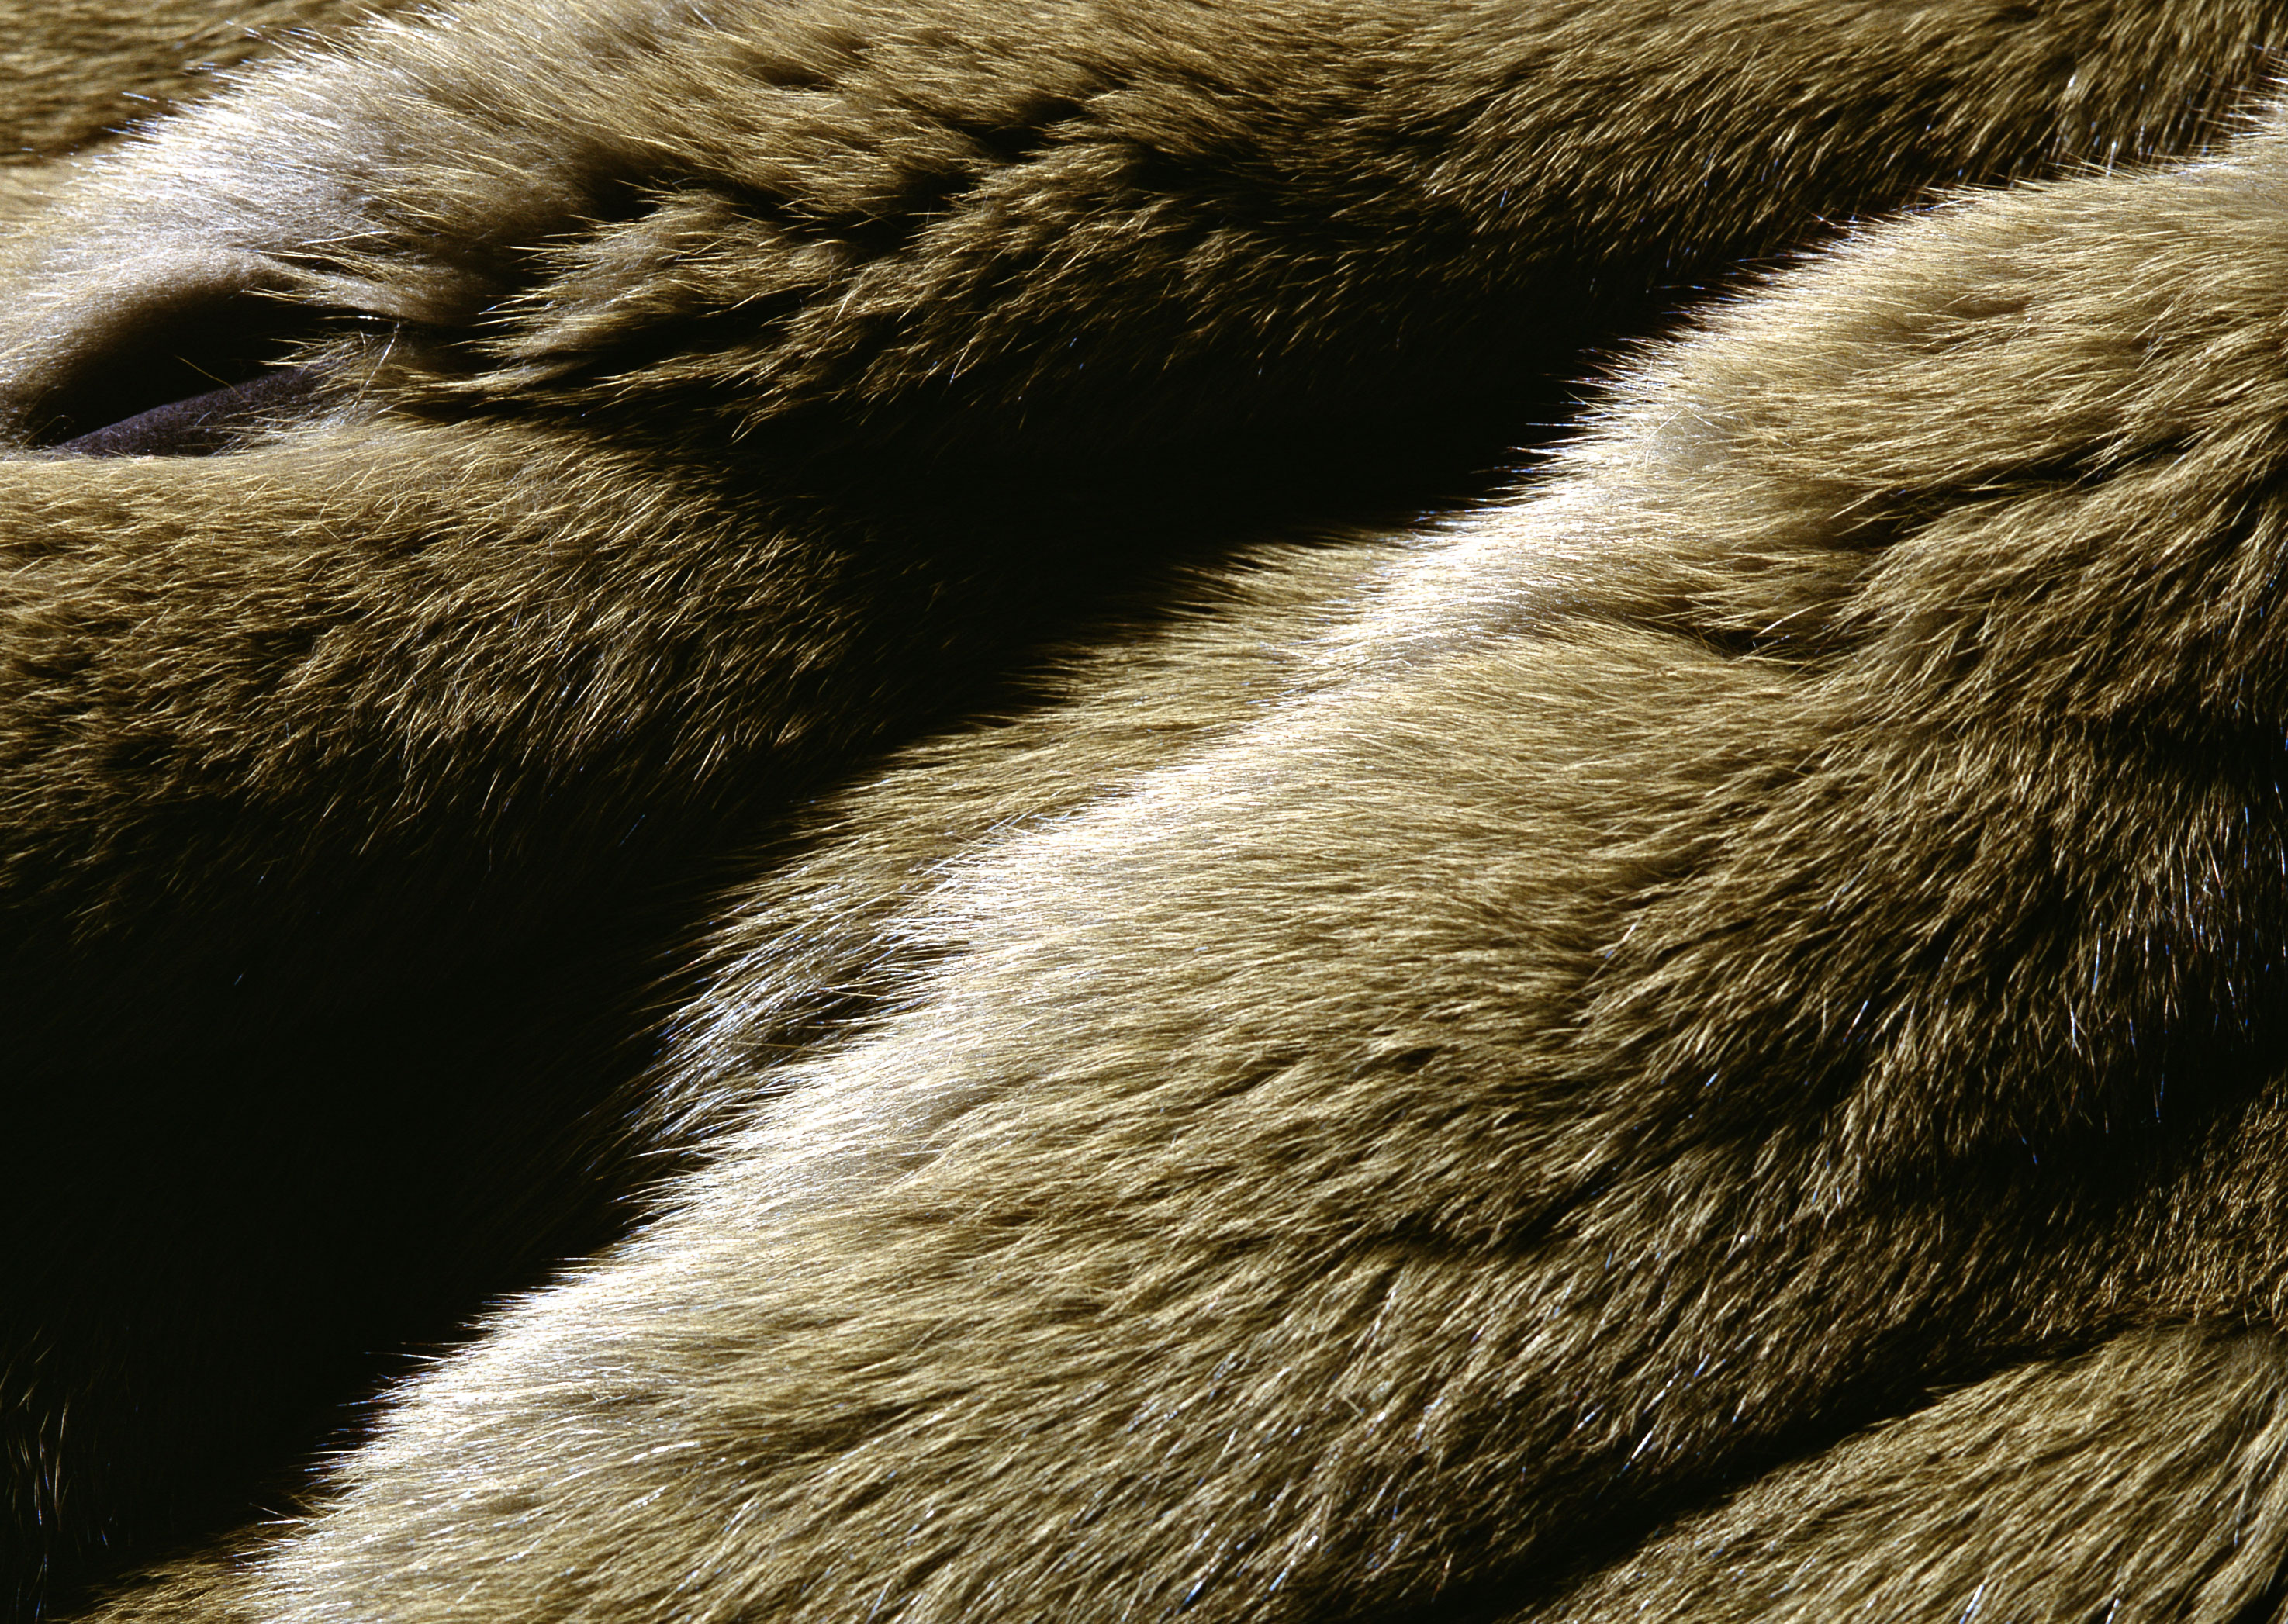 wolf skin texture, background